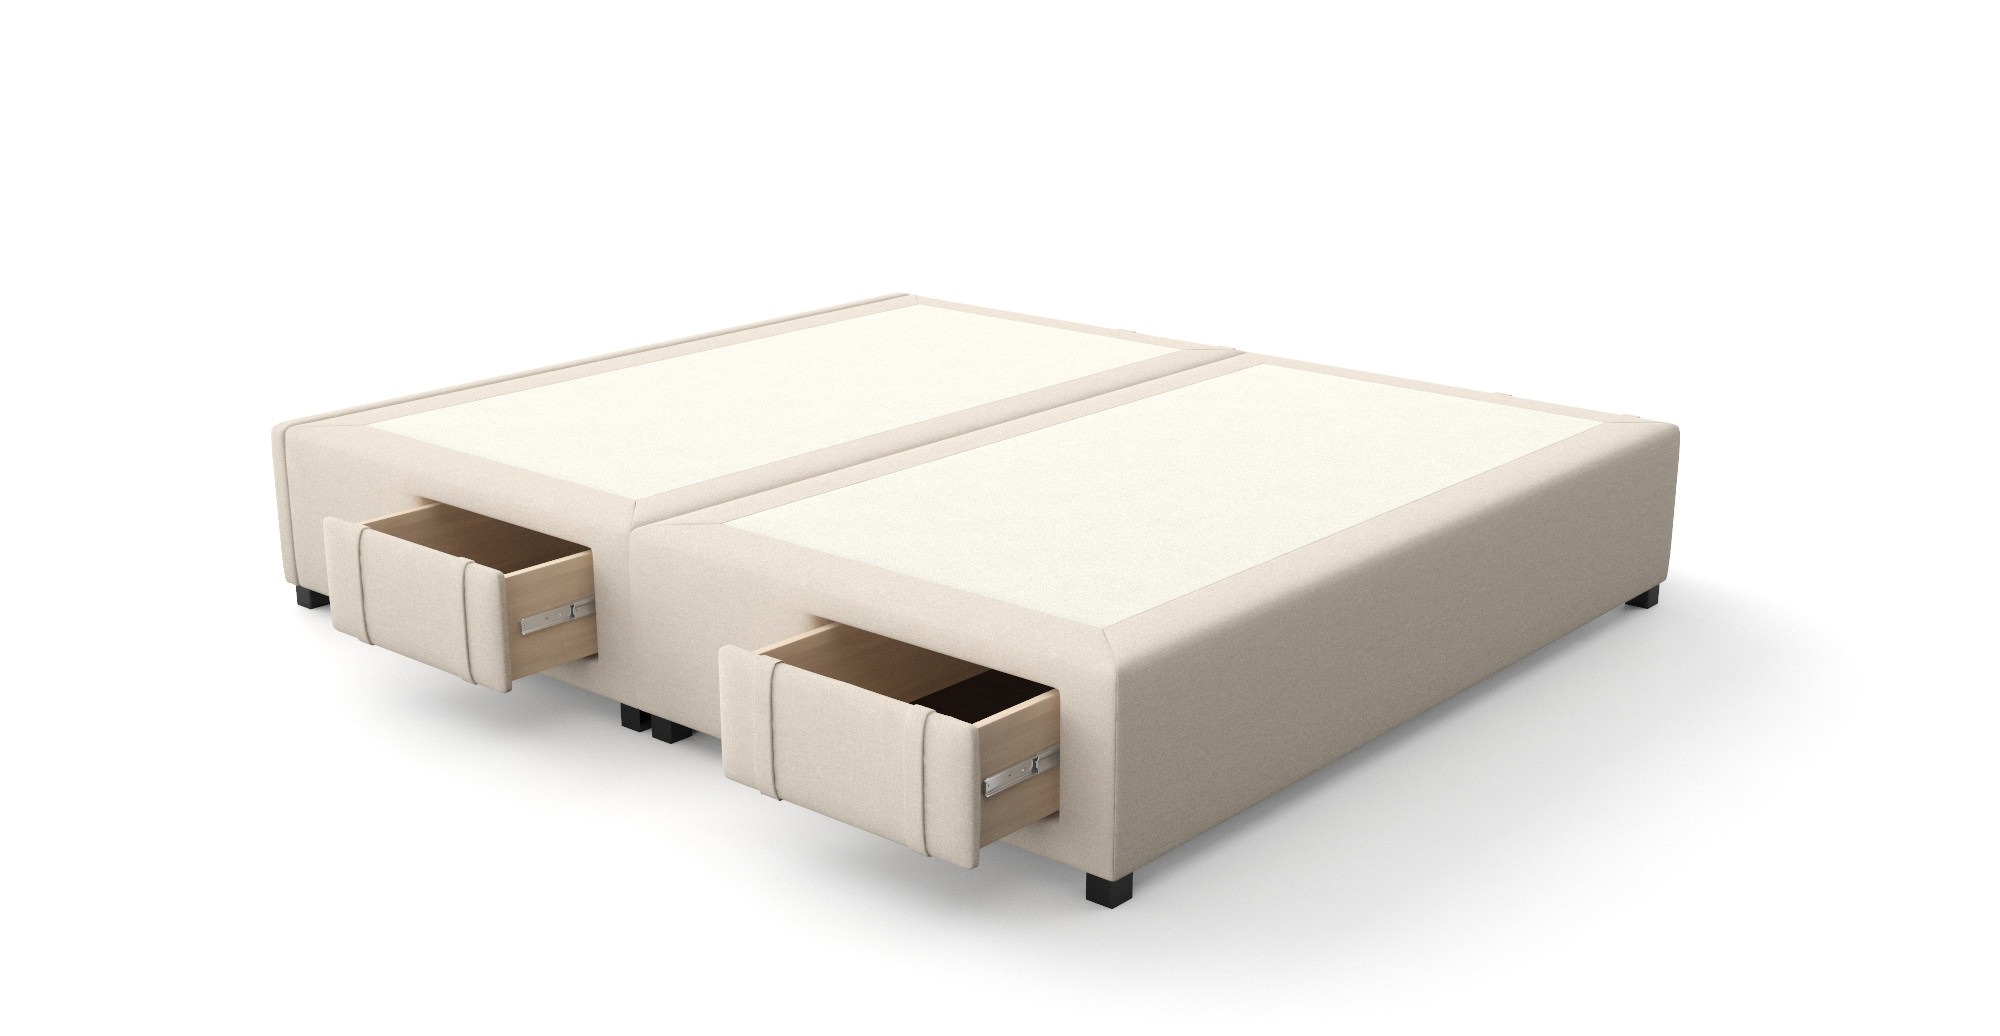 King Size Upholstered Bed Frame With Storage